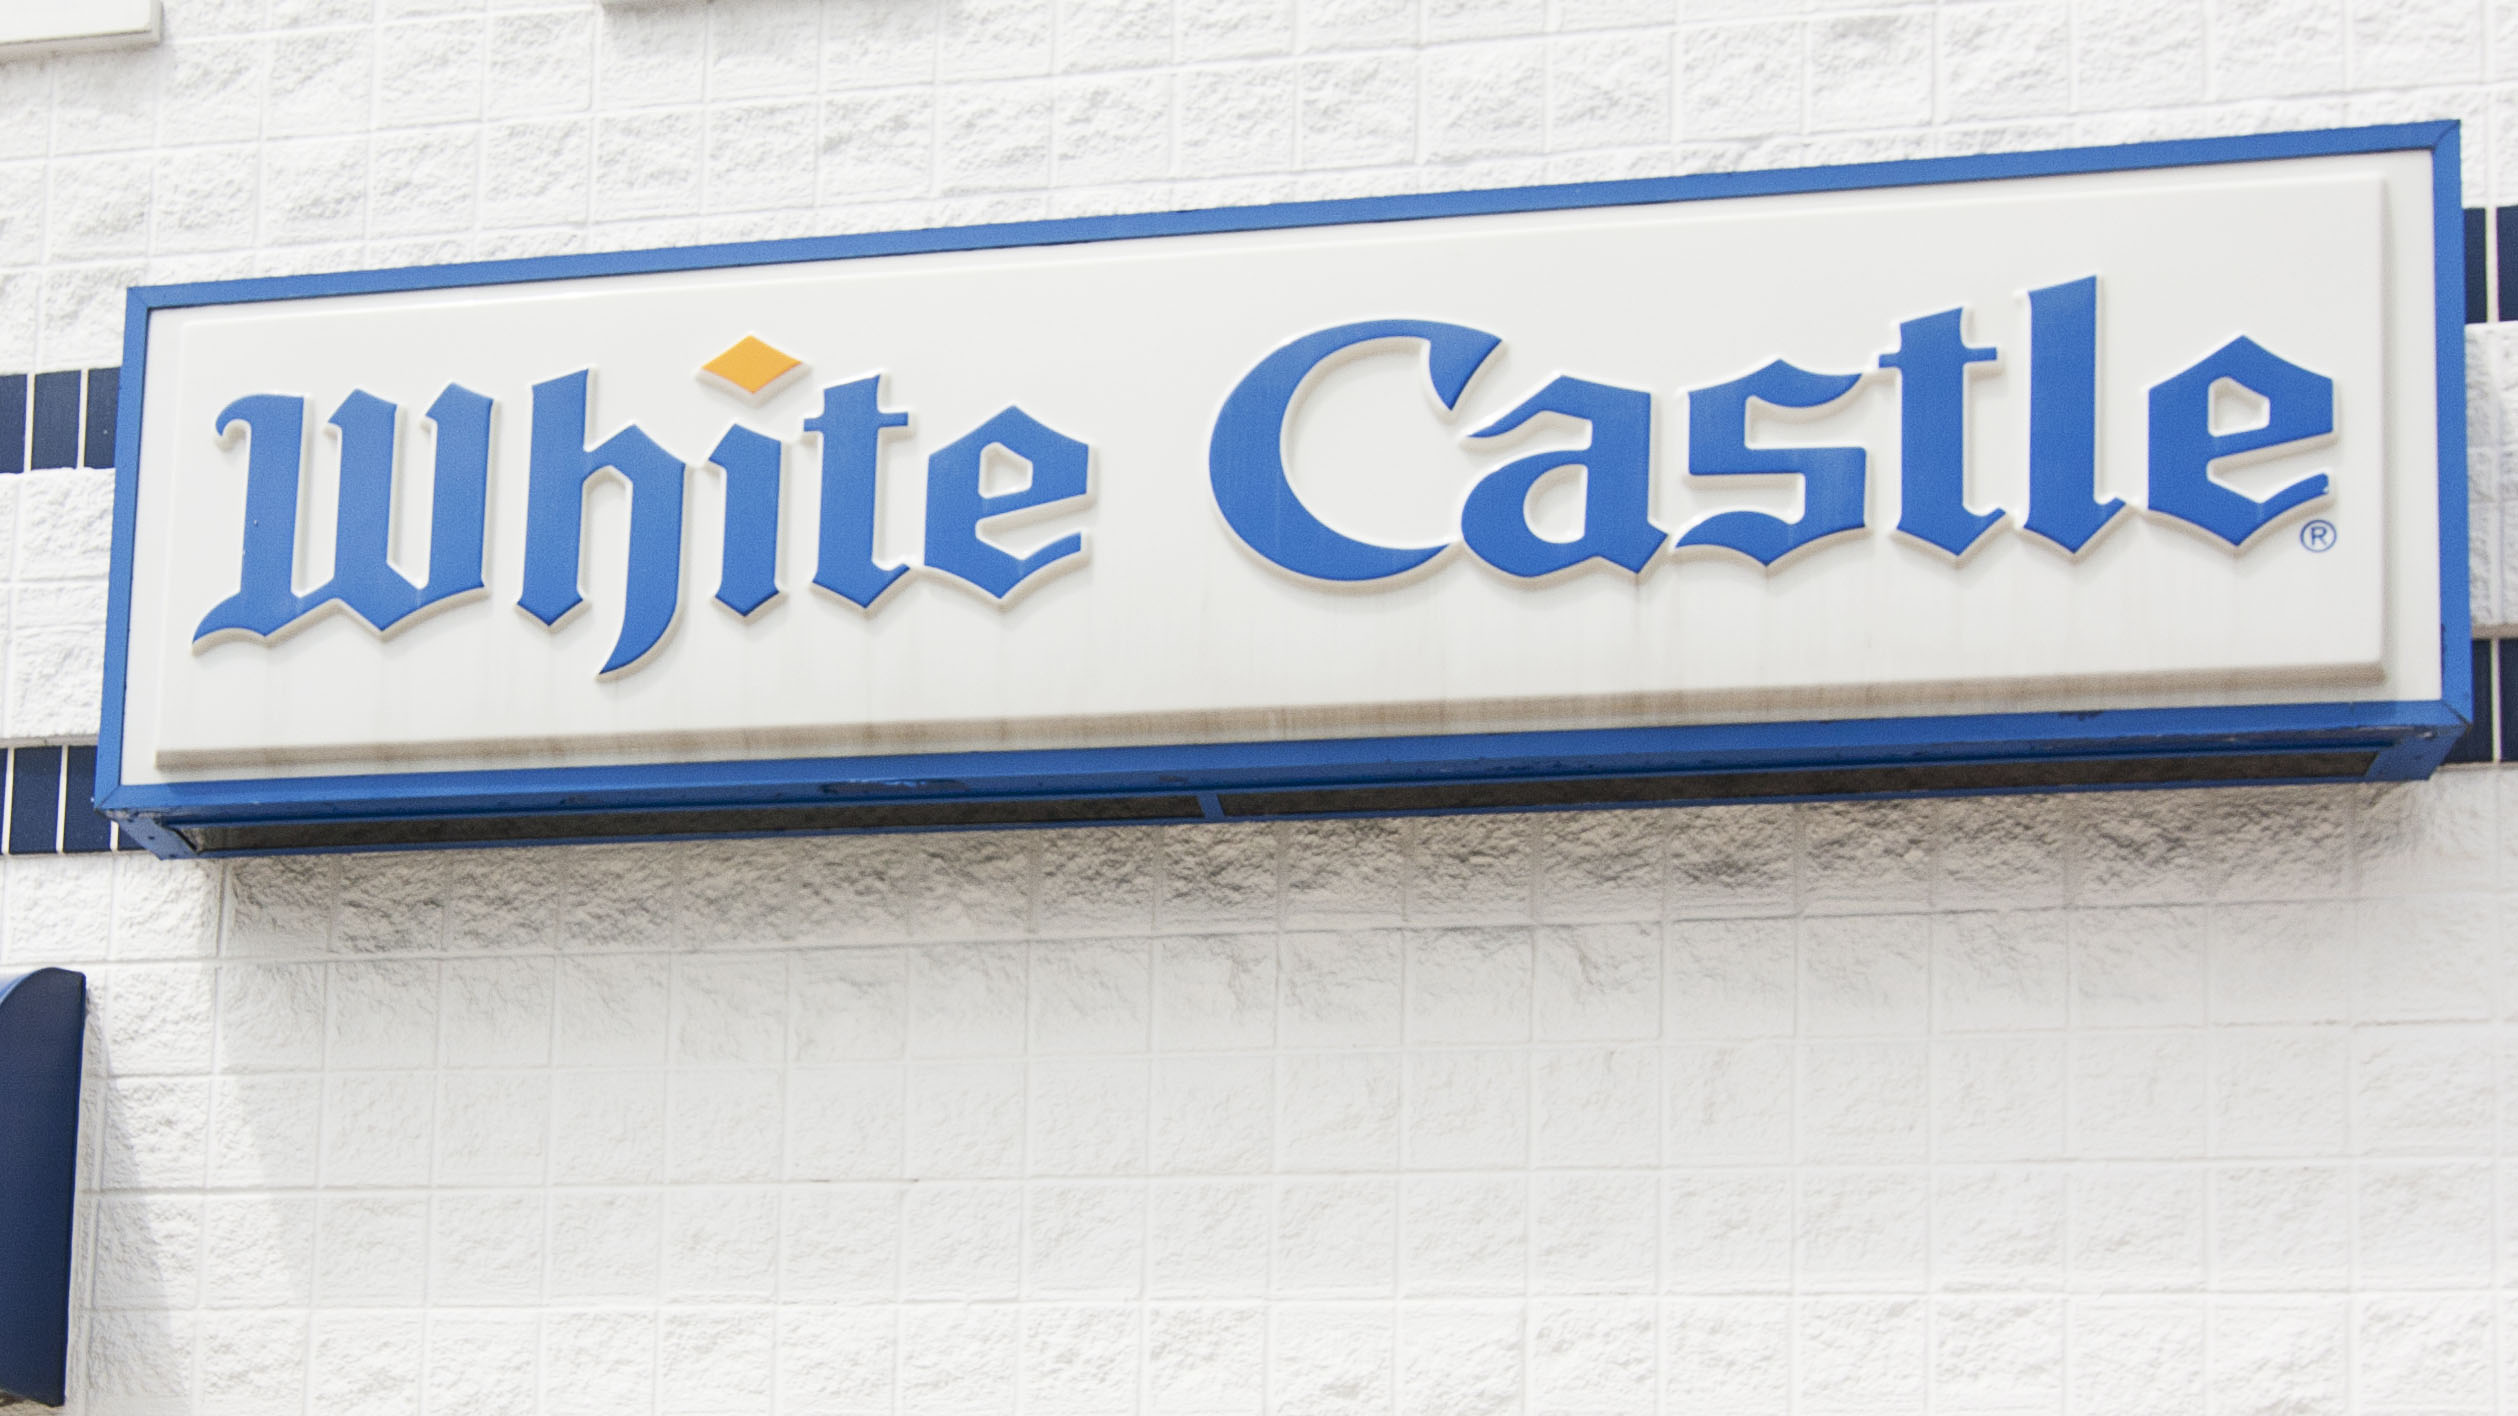 Westlake Legal Group White-Castle-sign White Castle's largest location sells out of burgers hours after opening Michael Hollan fox-news/us/us-regions/southwest/arizona fox-news/food-drink/food/fast-food fox news fnc/food-drink fnc article 318c7696-f45a-5895-bfec-cd927742a274